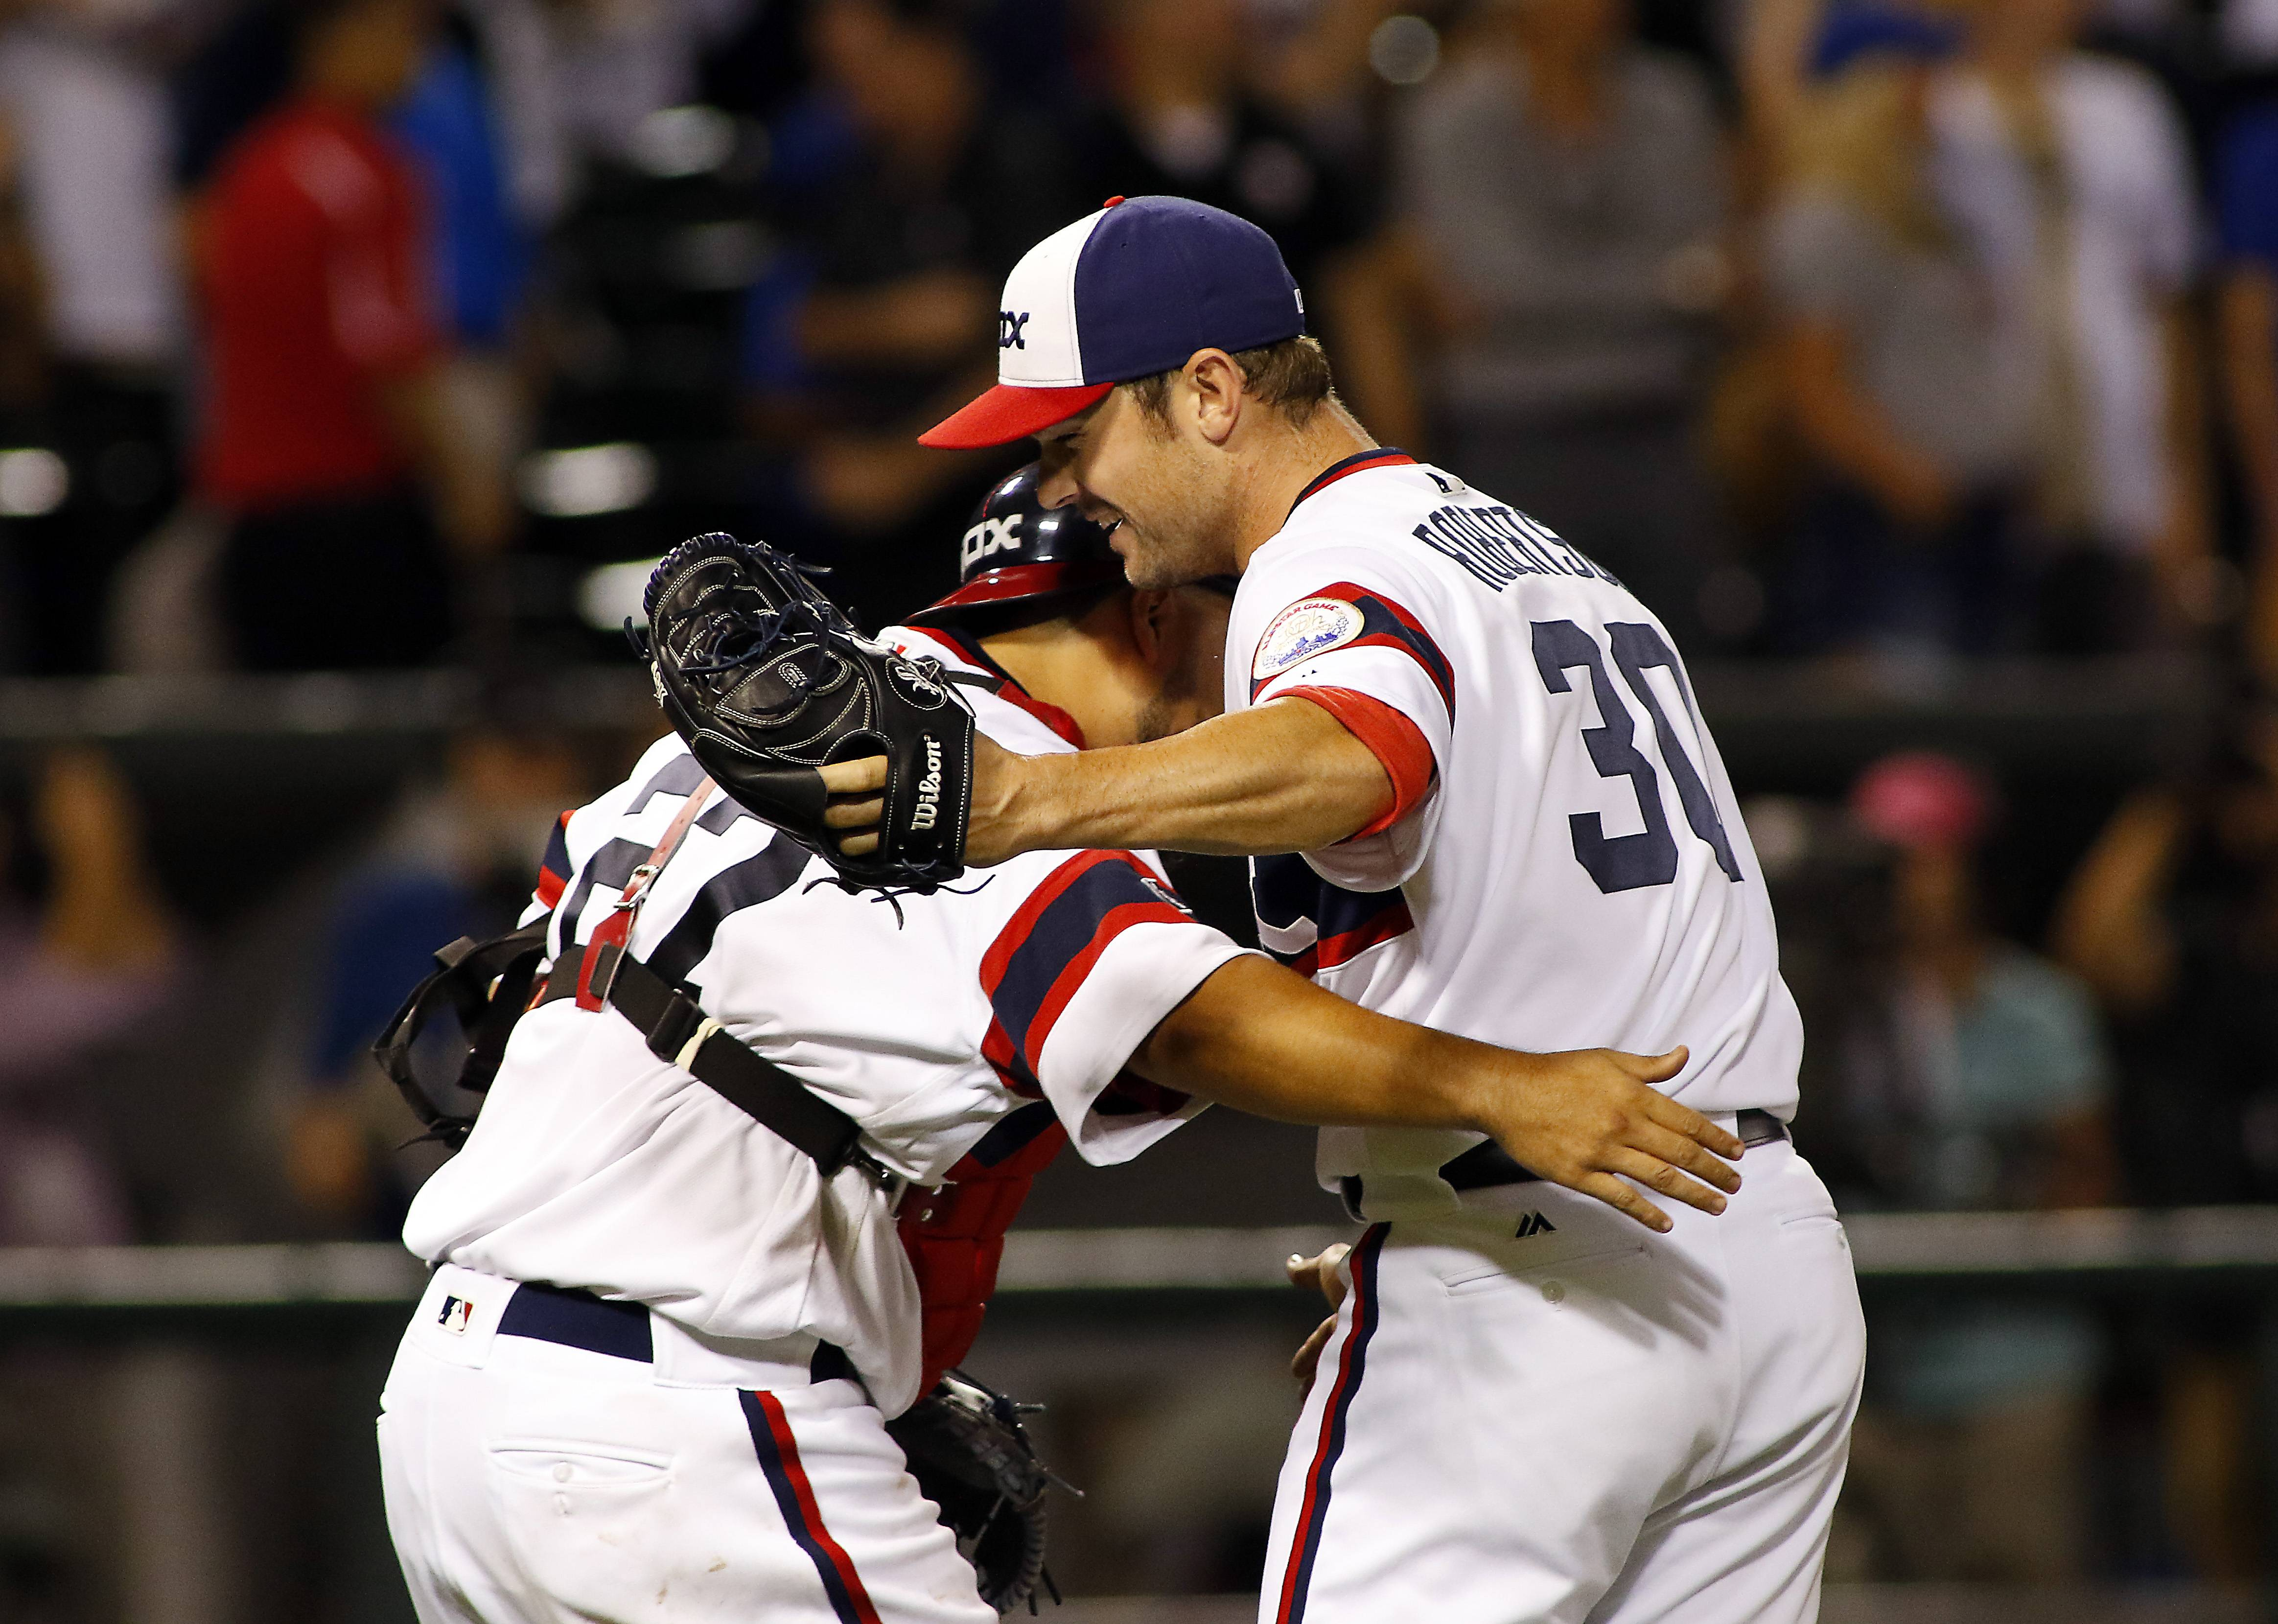 Chicago White Sox relief pitcher David Robertson (30) and catcher Dioner Navarro (27) celebrate after their victory.